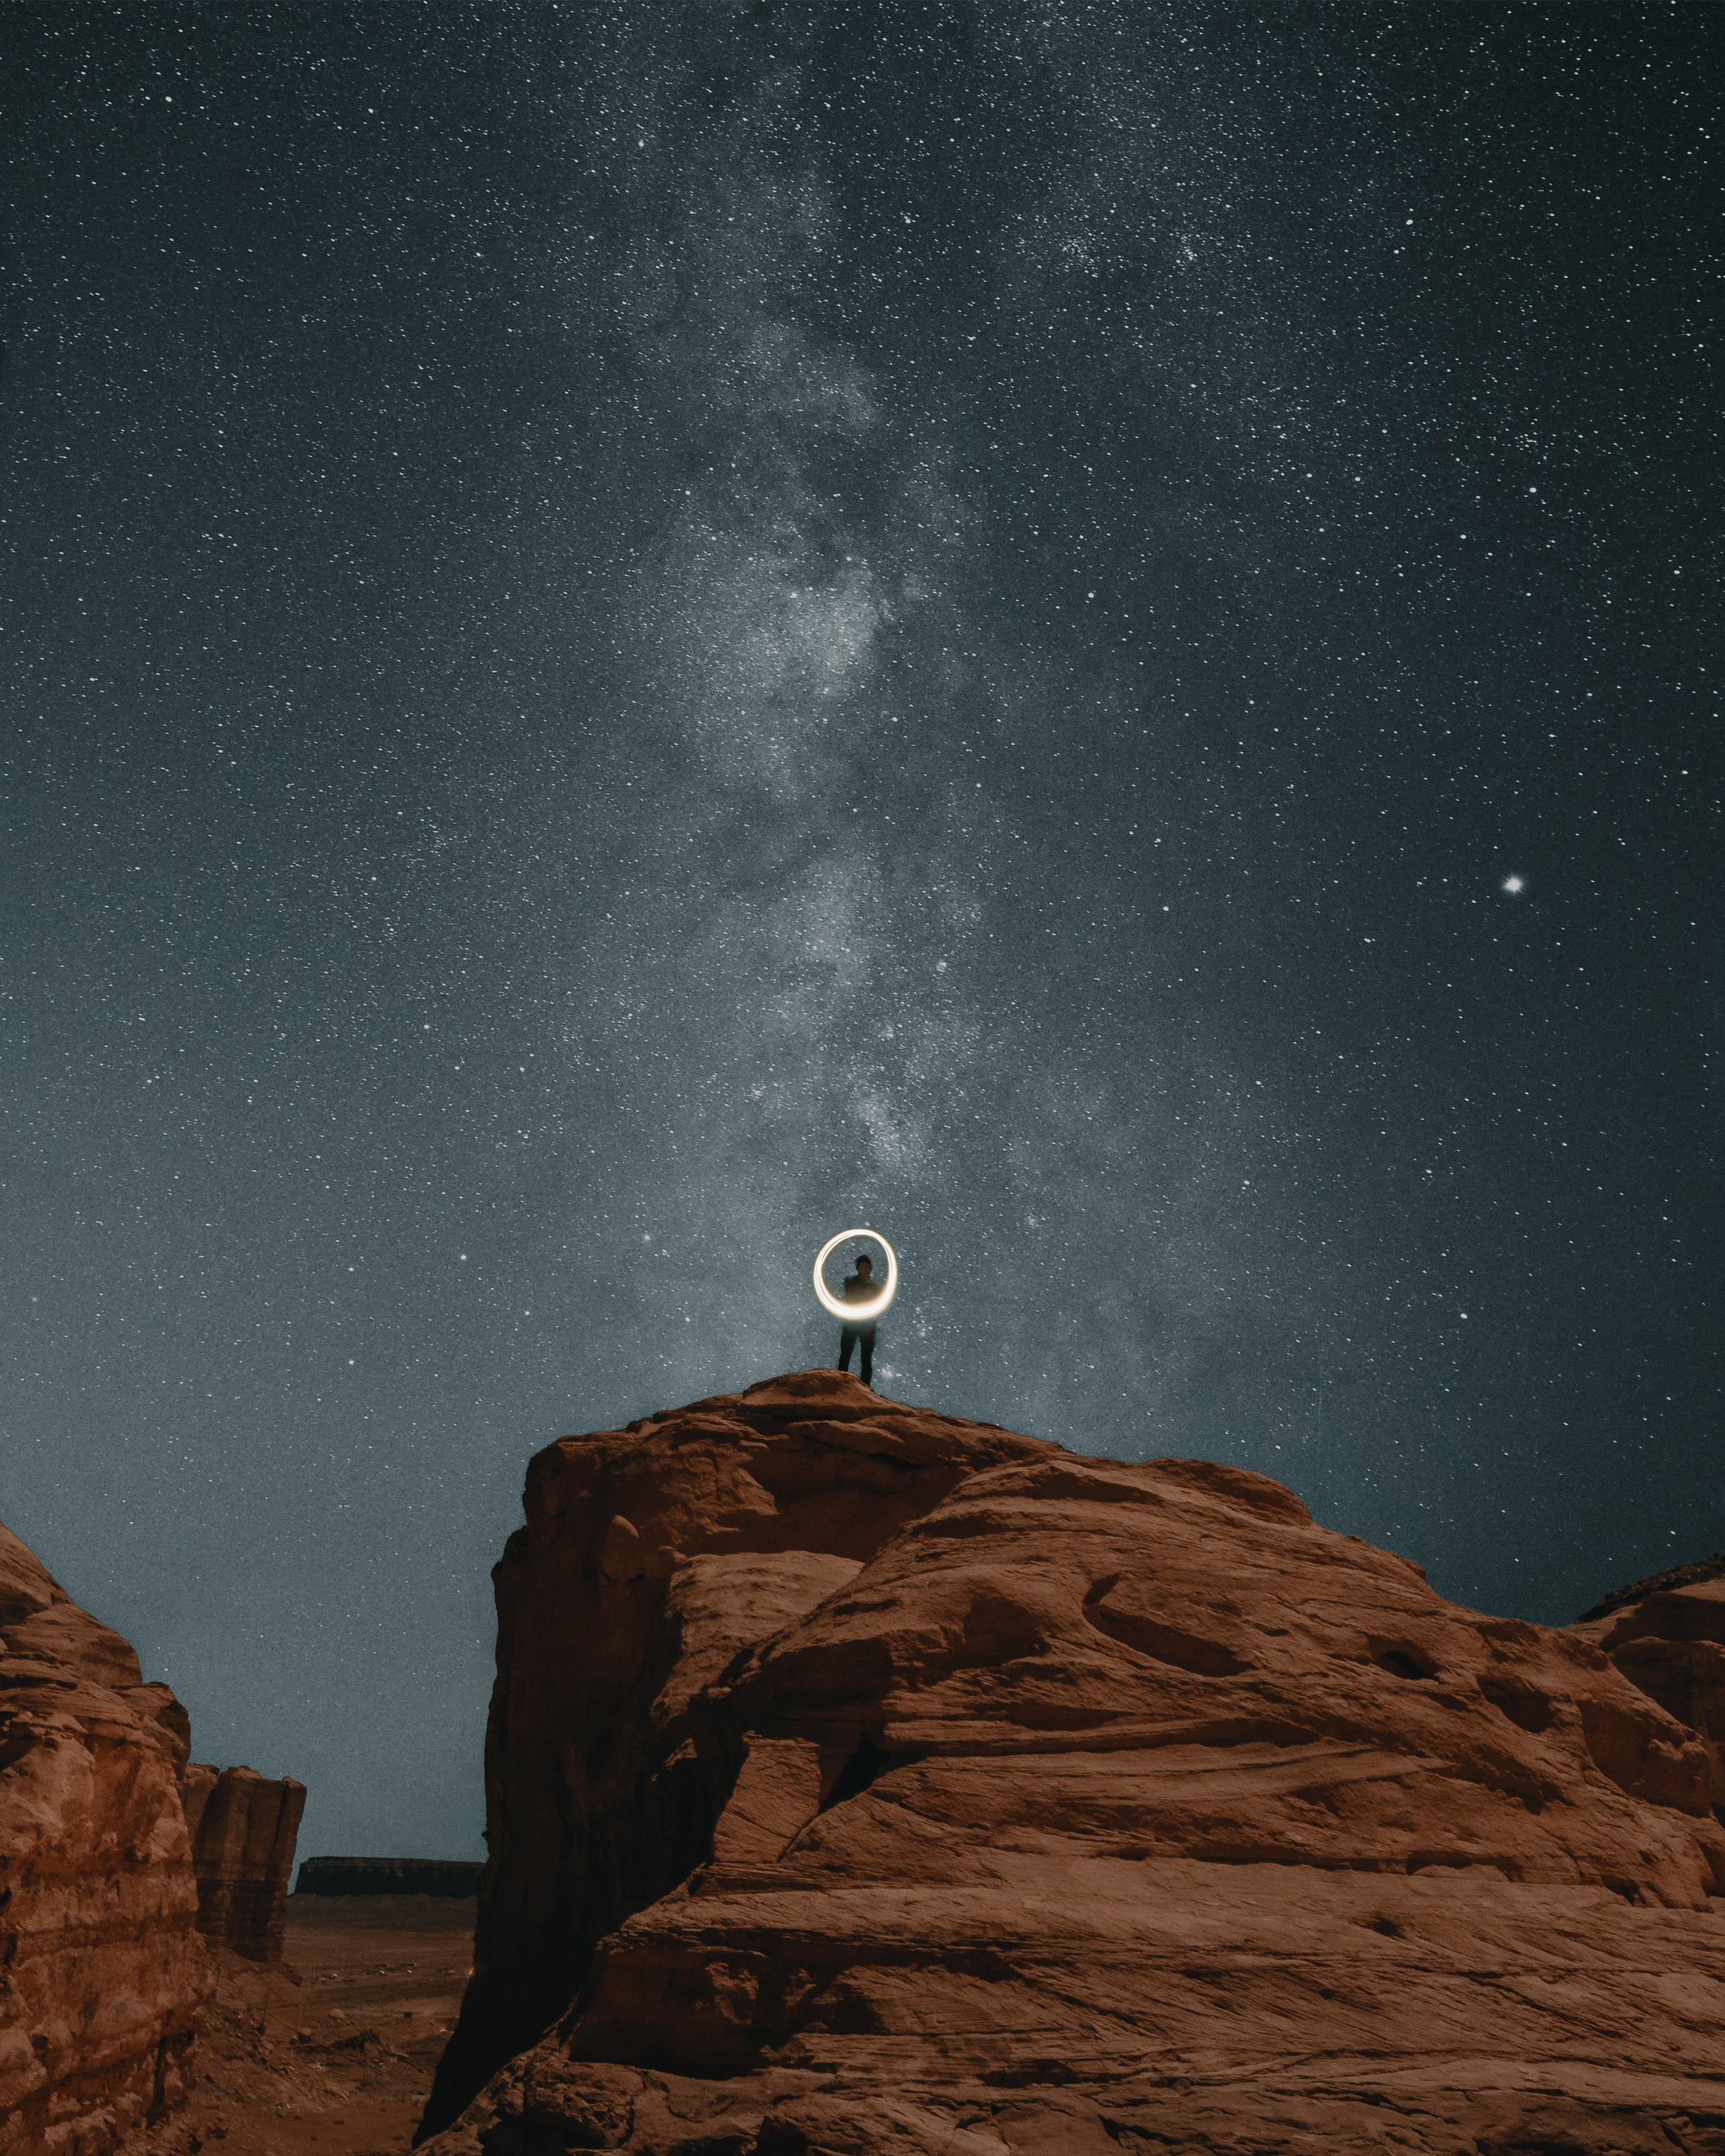 154423 download wallpaper Nature, Alone, Lonely, Loneliness, Rocks, Canyon, Night screensavers and pictures for free